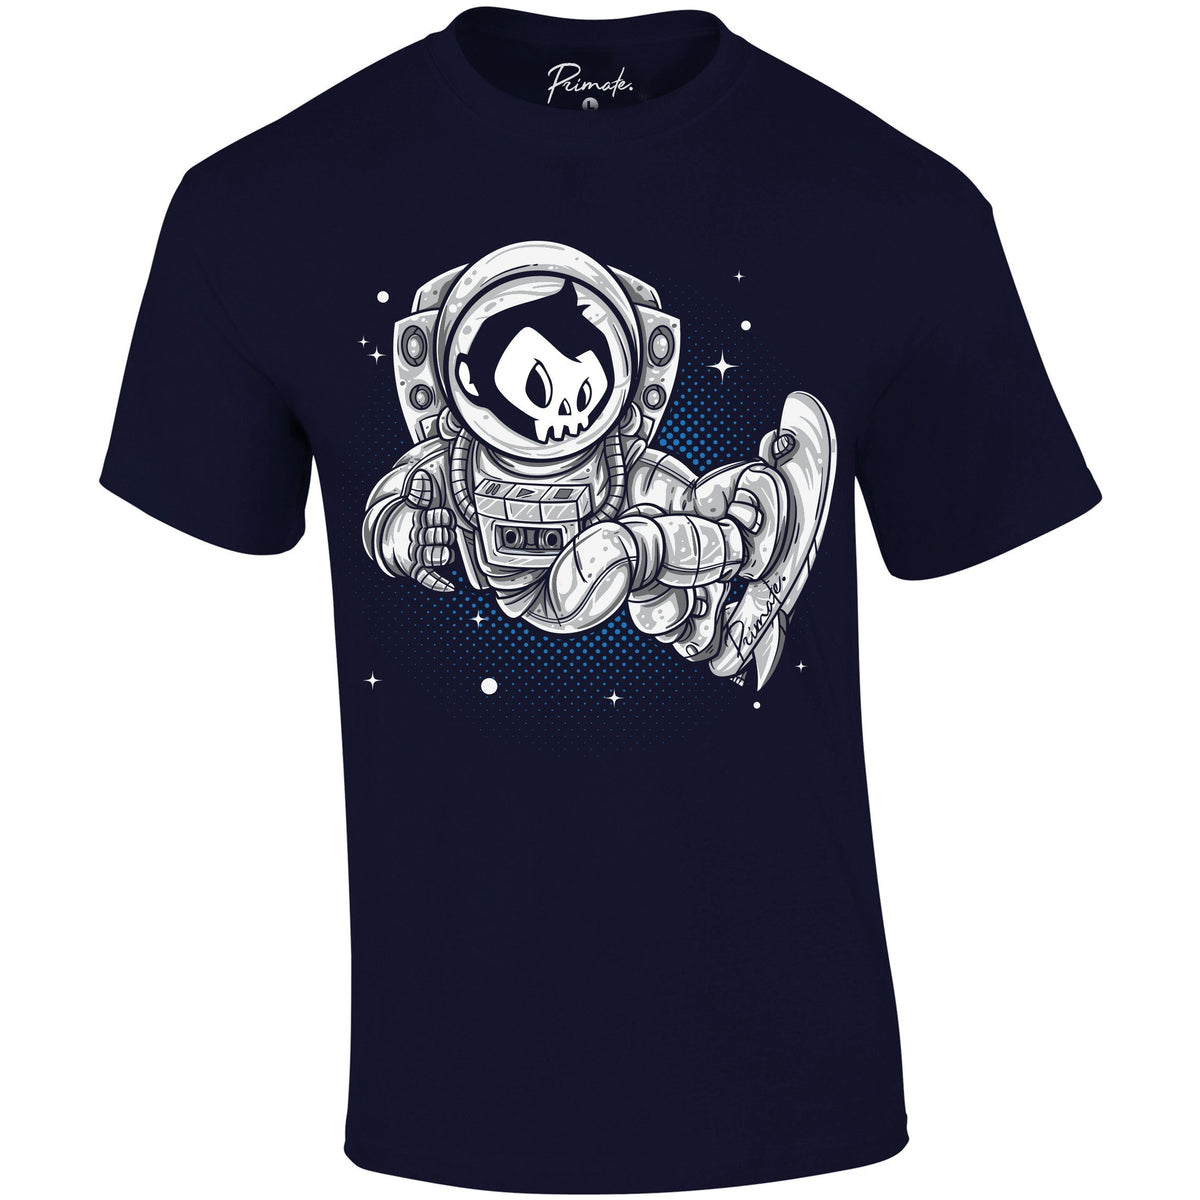 Primate Space Skater - T-Shirt Primate. Fashion Unisex: Small